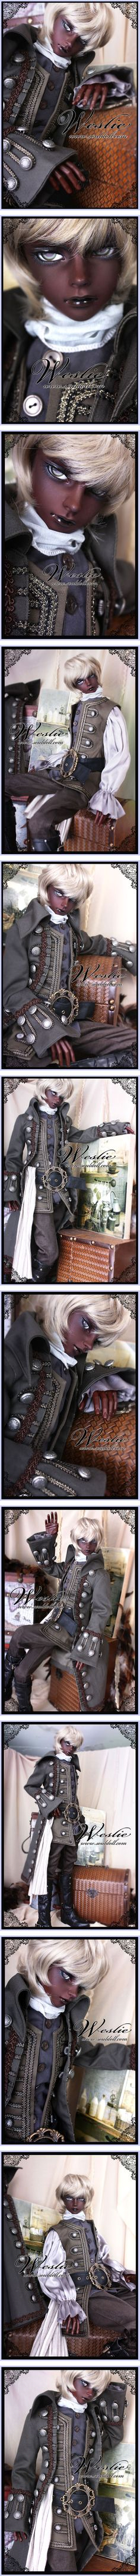 Weslie 69cm, Soul Doll - BJD Dolls, Accessories - Alice's Collections